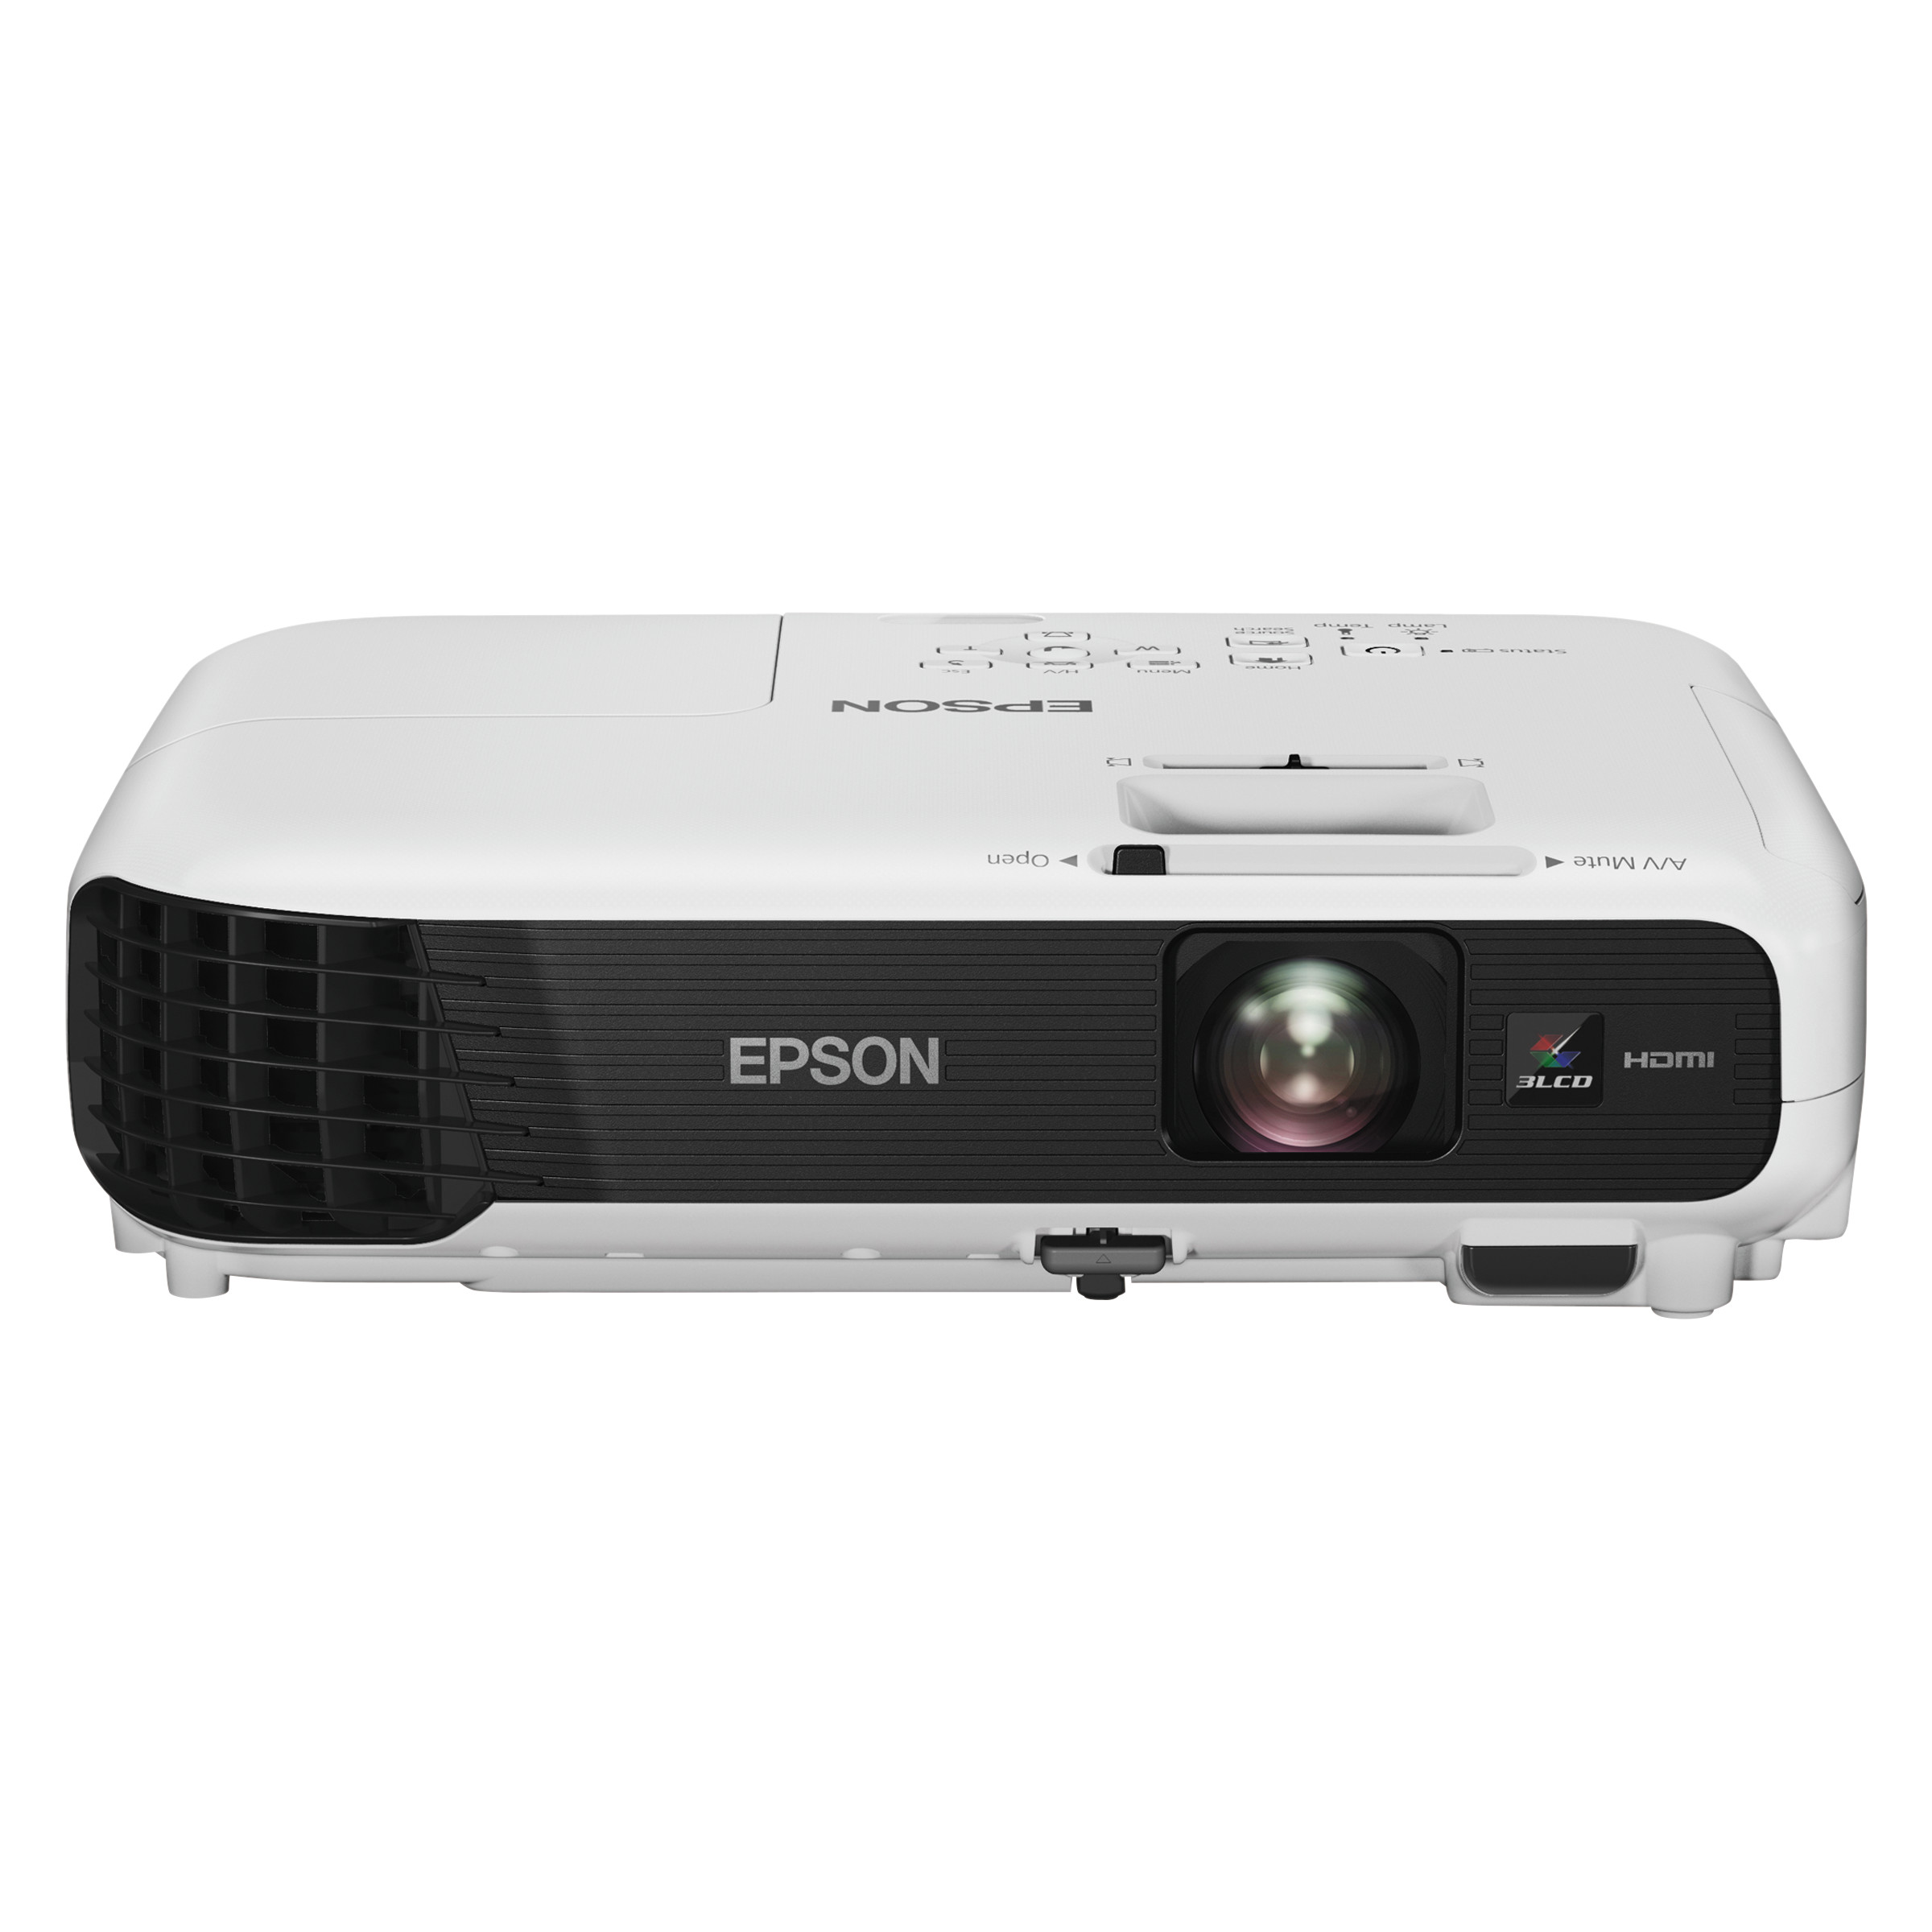 Crib for sale in olongapo - Epson Vs240 Svga 3lcd Projector